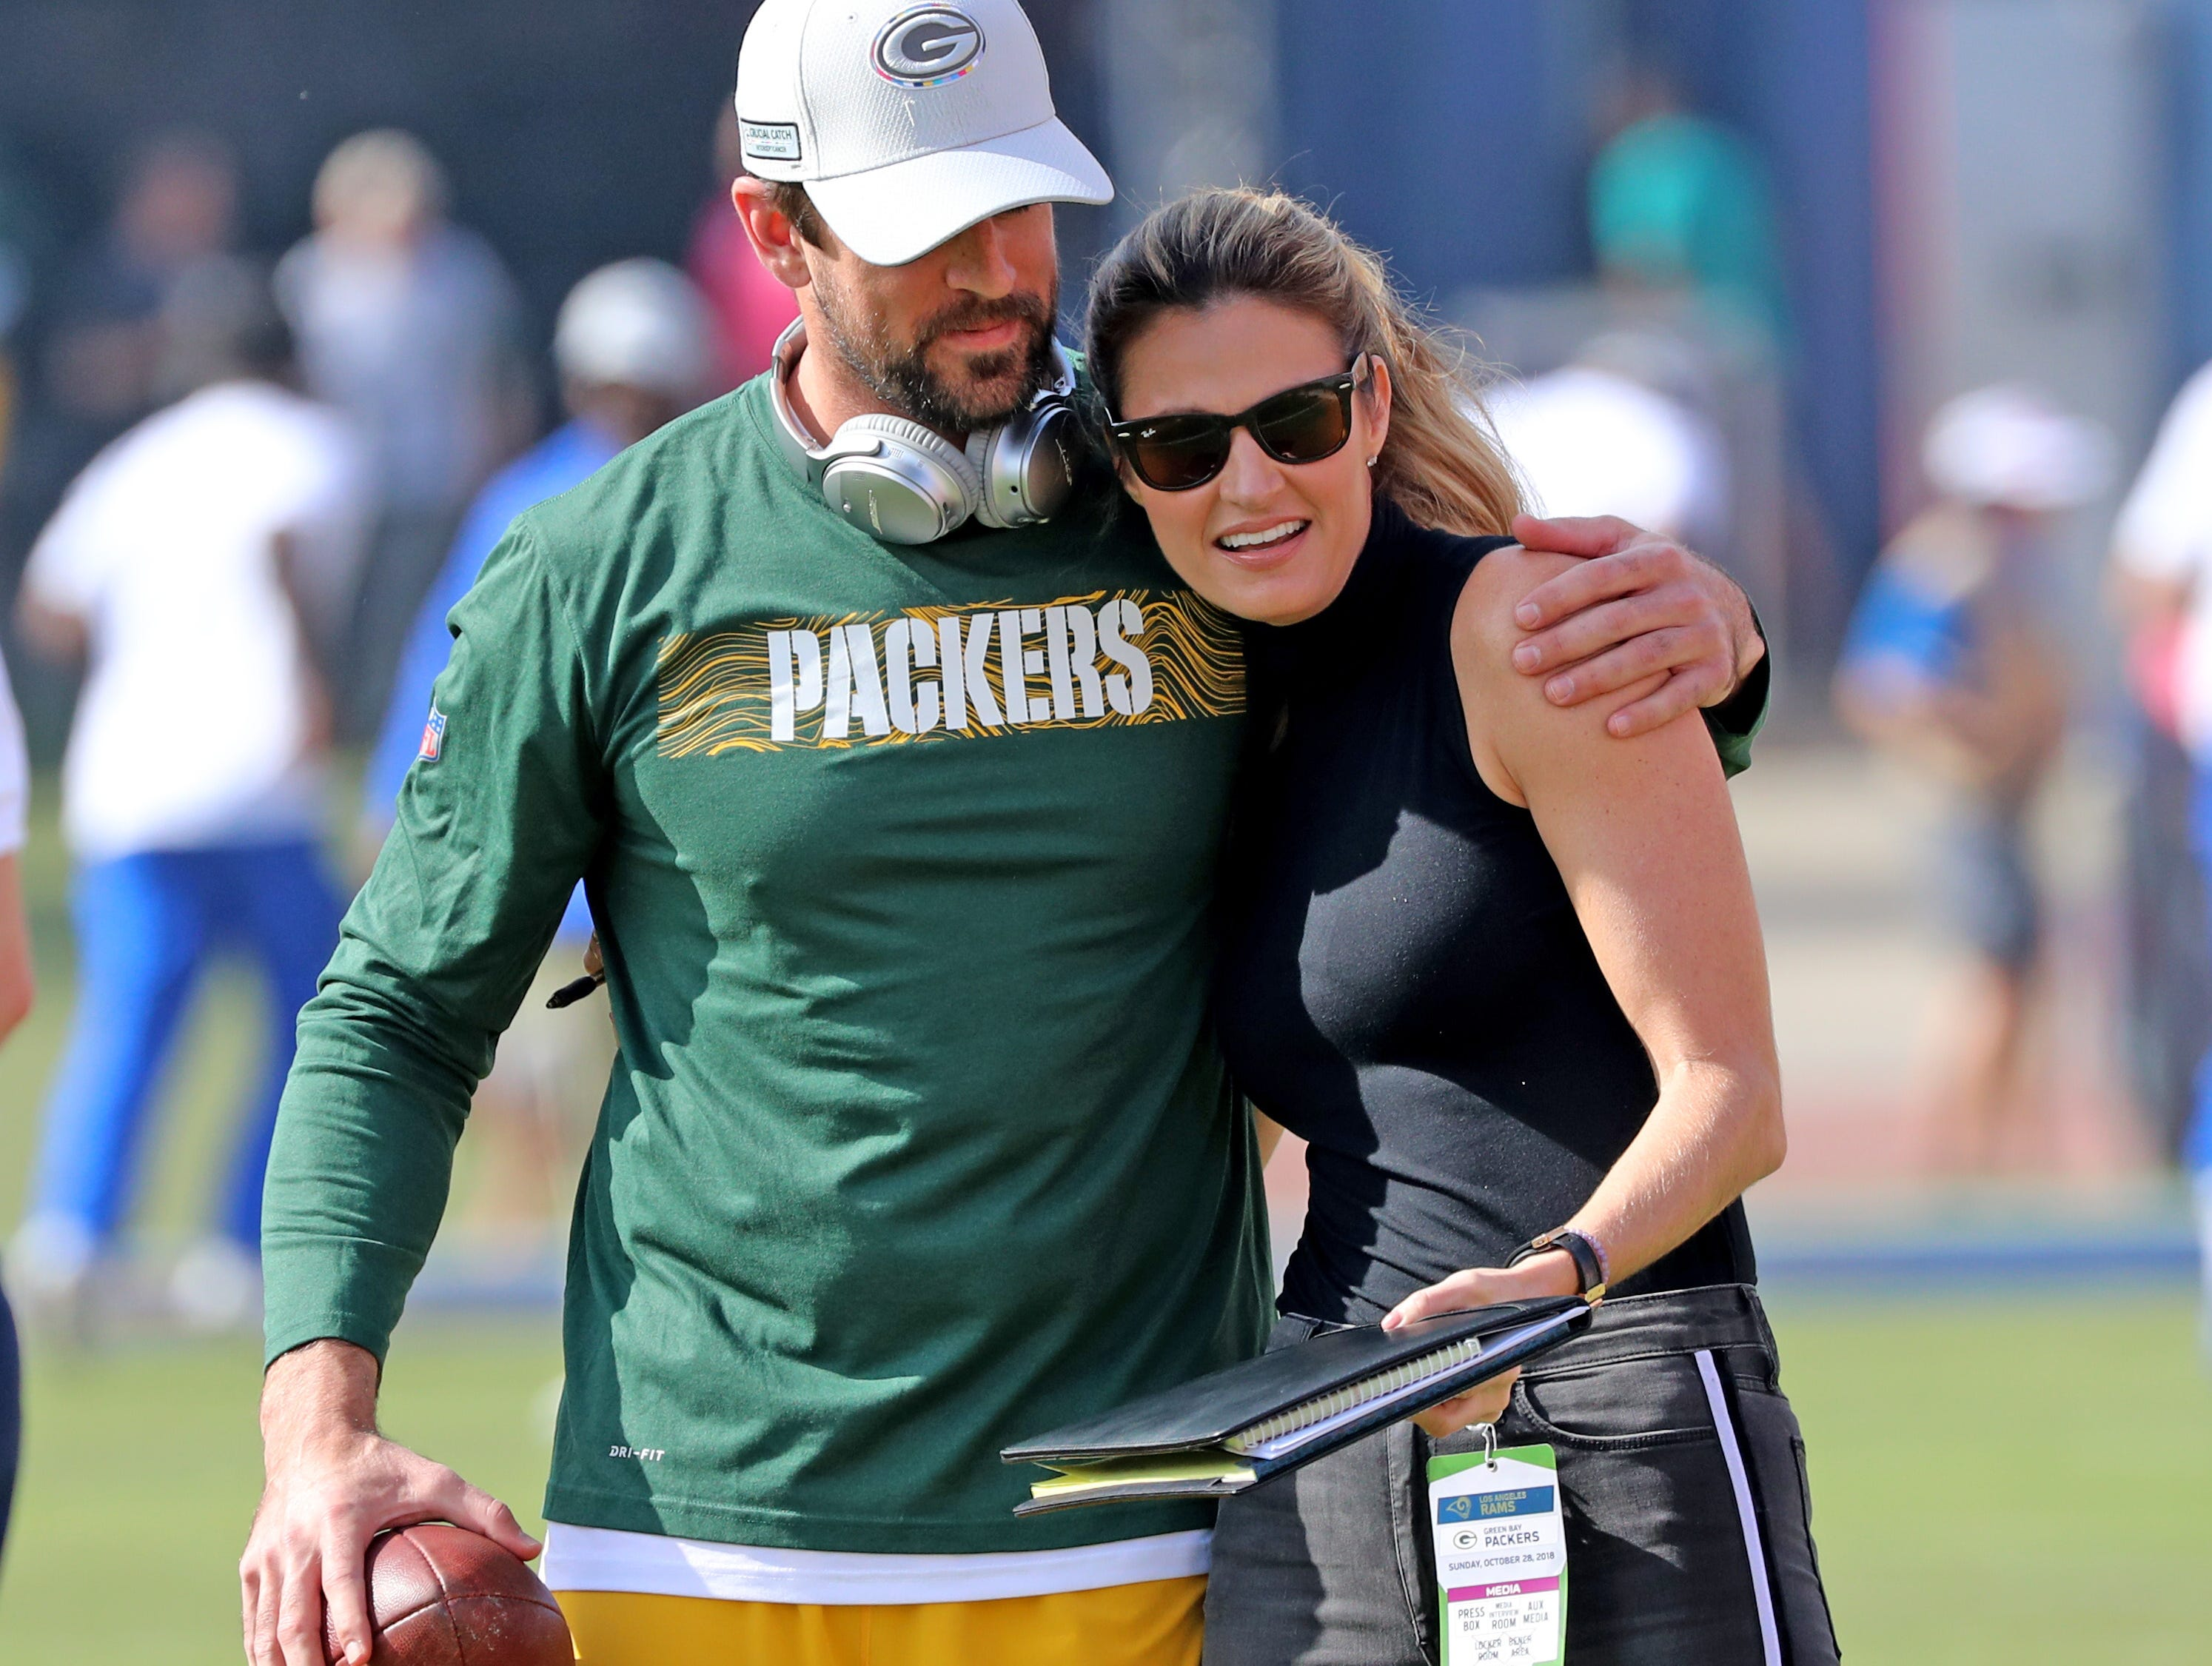 Green Bay Packers quarterback Aaron Rodgers (12) gets a hug from Erin Andrews during warmups before the game against the LA Rams Sunday, October 28, 2018 at the Memorial Coliseum in Los Angeles.